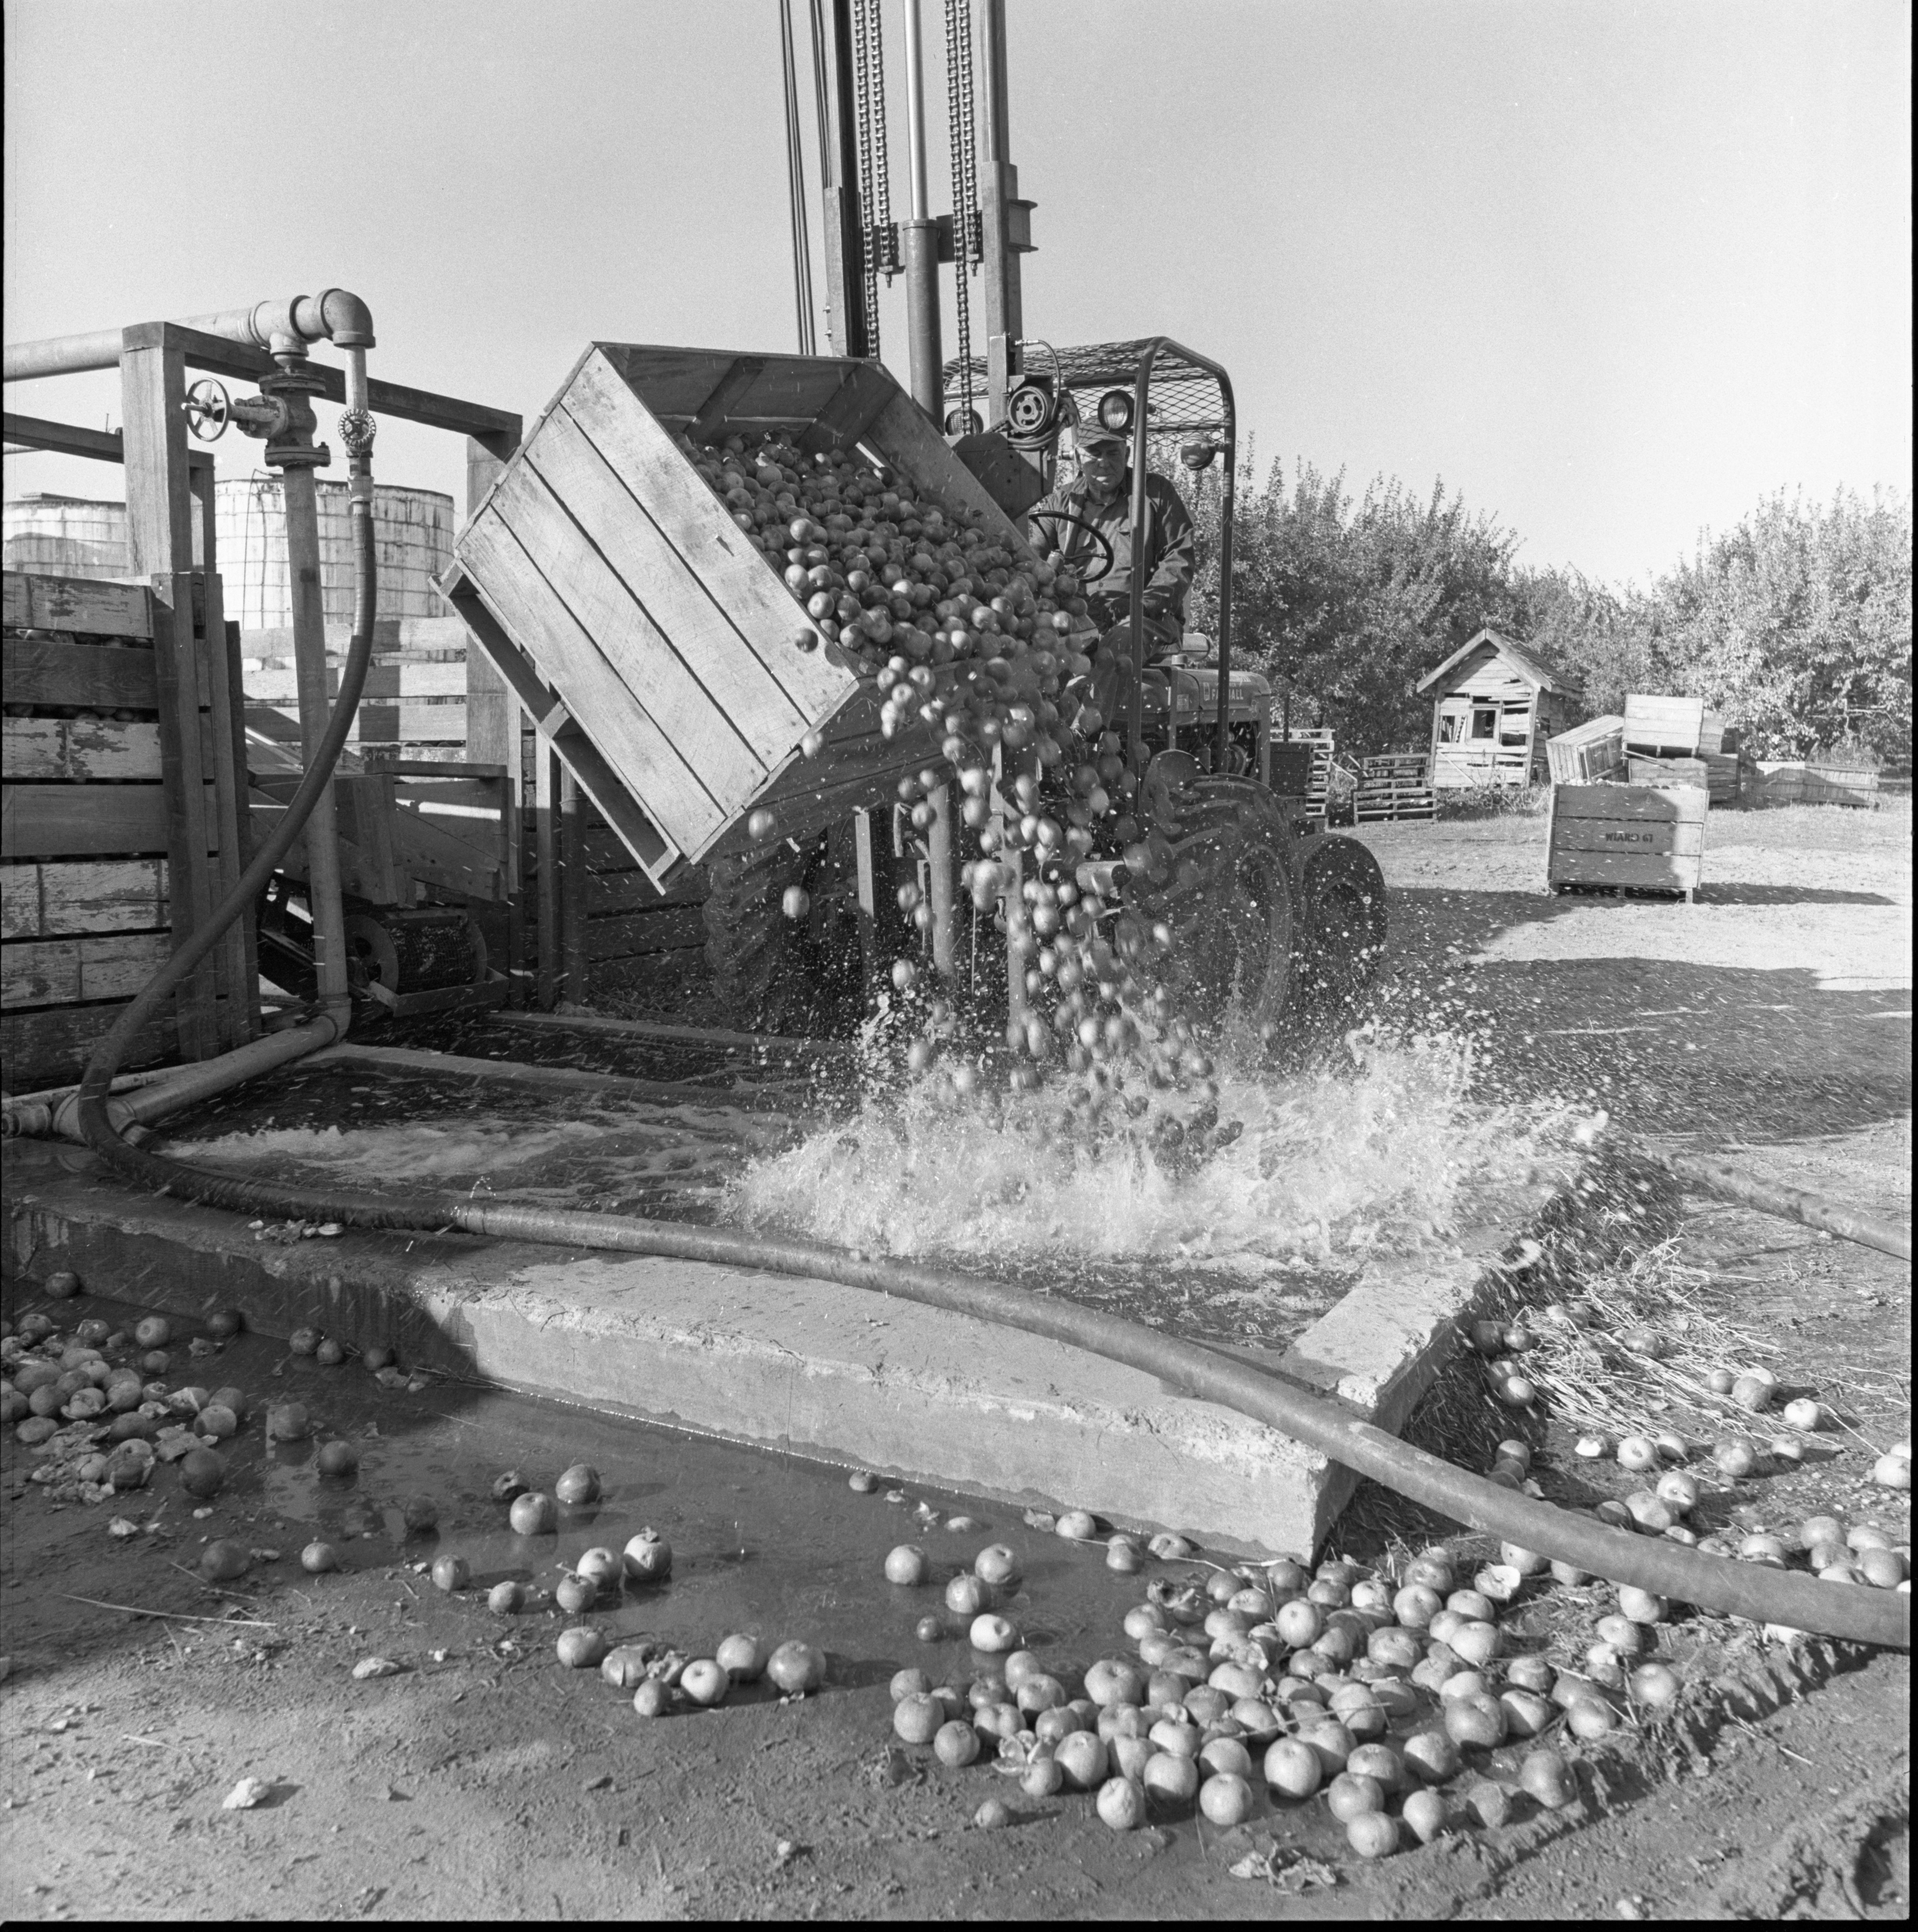 Apples Destined To Become Vinegar Are Dumped Into A Trough For Cleaning At Wiard's Orchards, October 1974 image